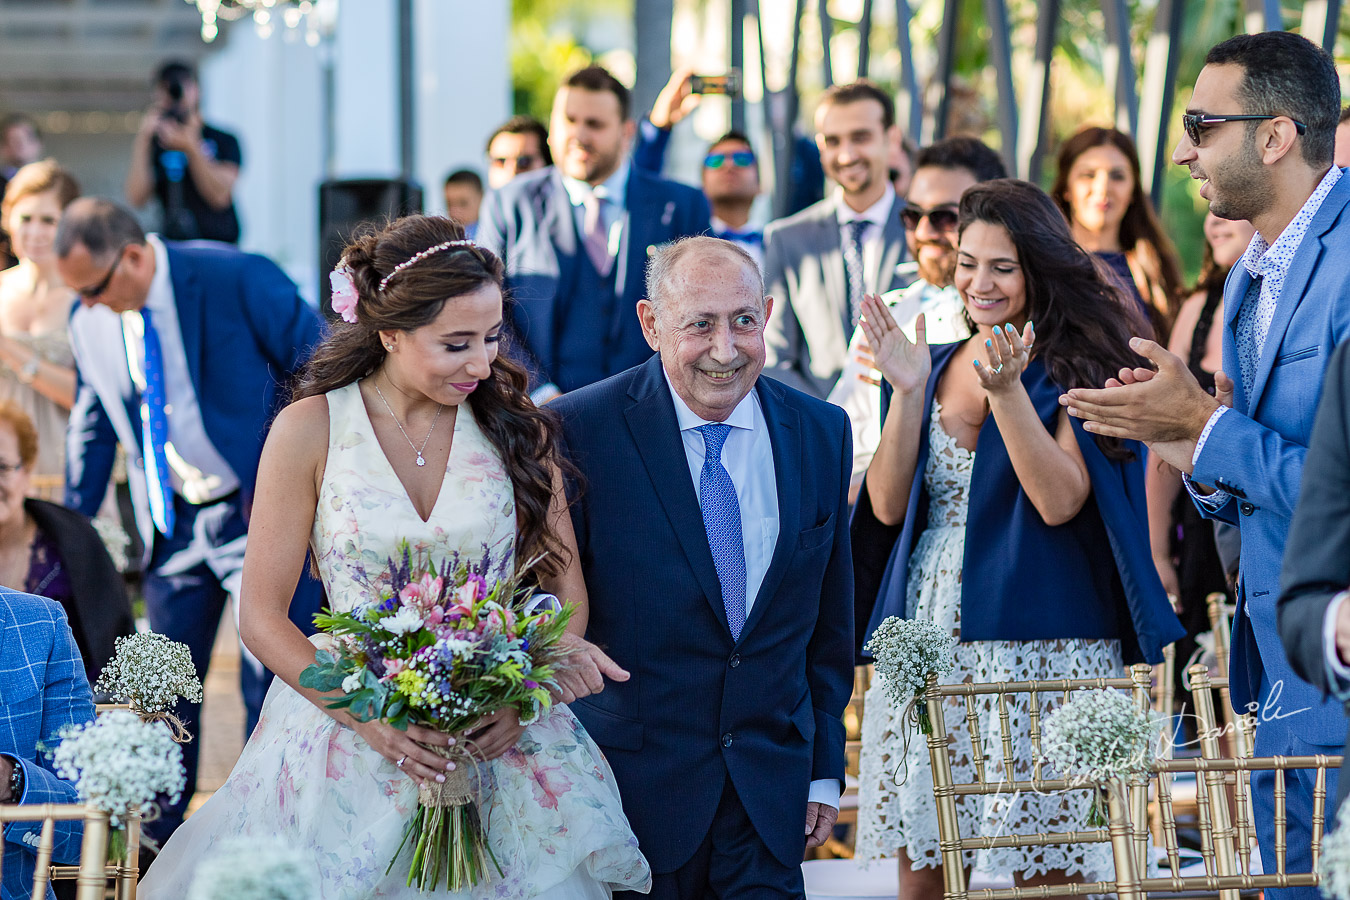 The bride coming down the isle with her father photographed during the ceremony, as part of an Exclusive Wedding photography at Grand Resort Limassol, captured by Cyprus Wedding Photographer Cristian Dascalu.